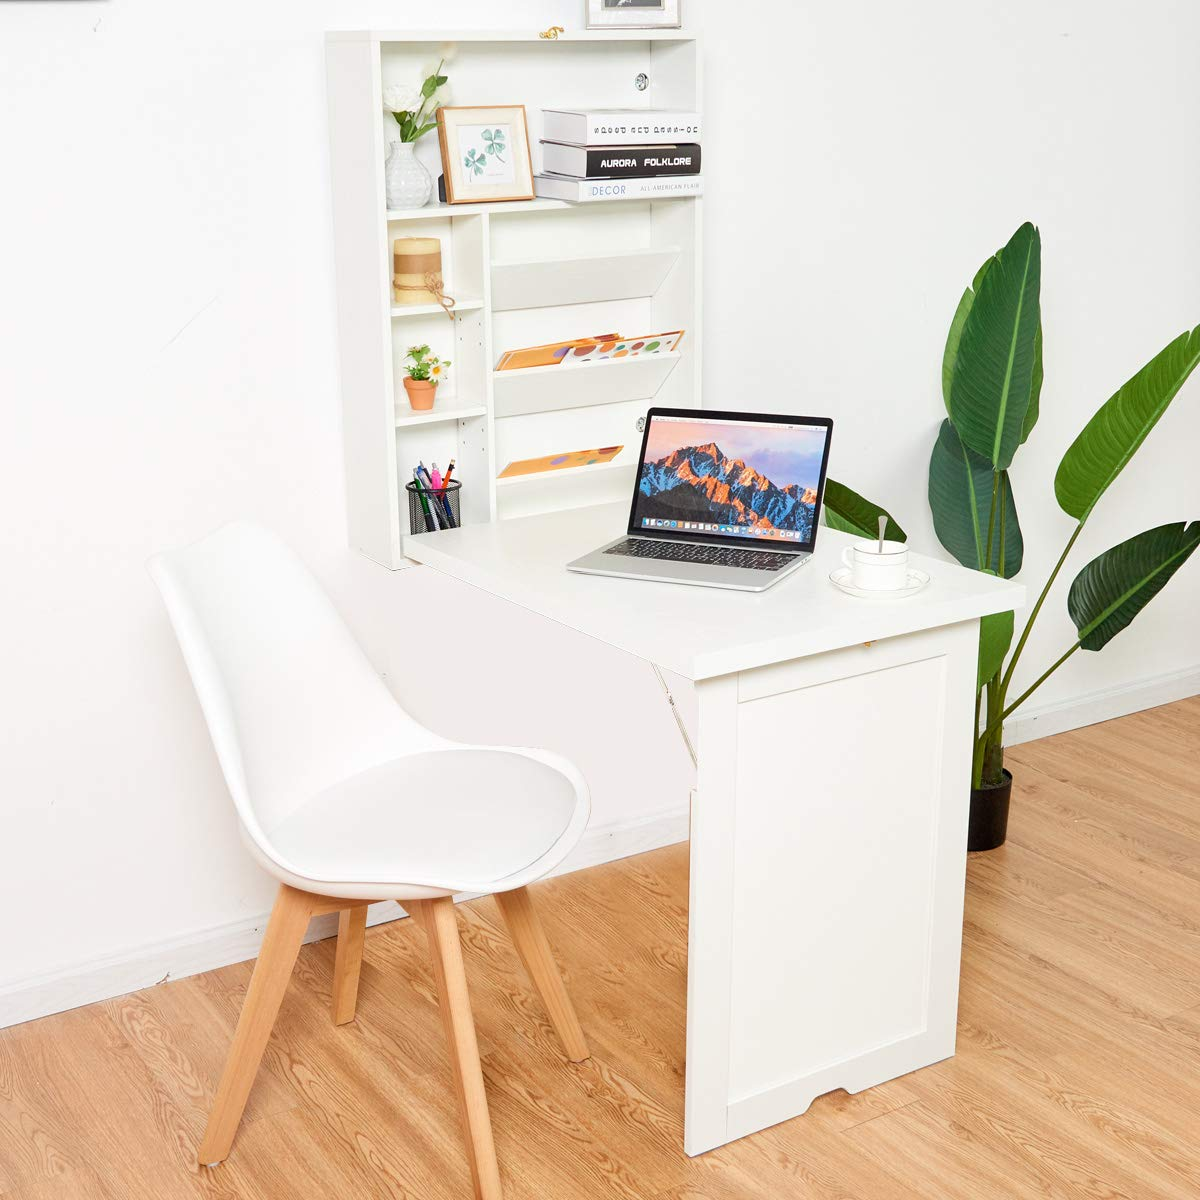 TANGKULA Wall Mounted Table, Fold Out Multi-Function Computer Desk, Convertible Desk Writing Desk Home Office Wood Convertible Desk; Large Storage Area (White)